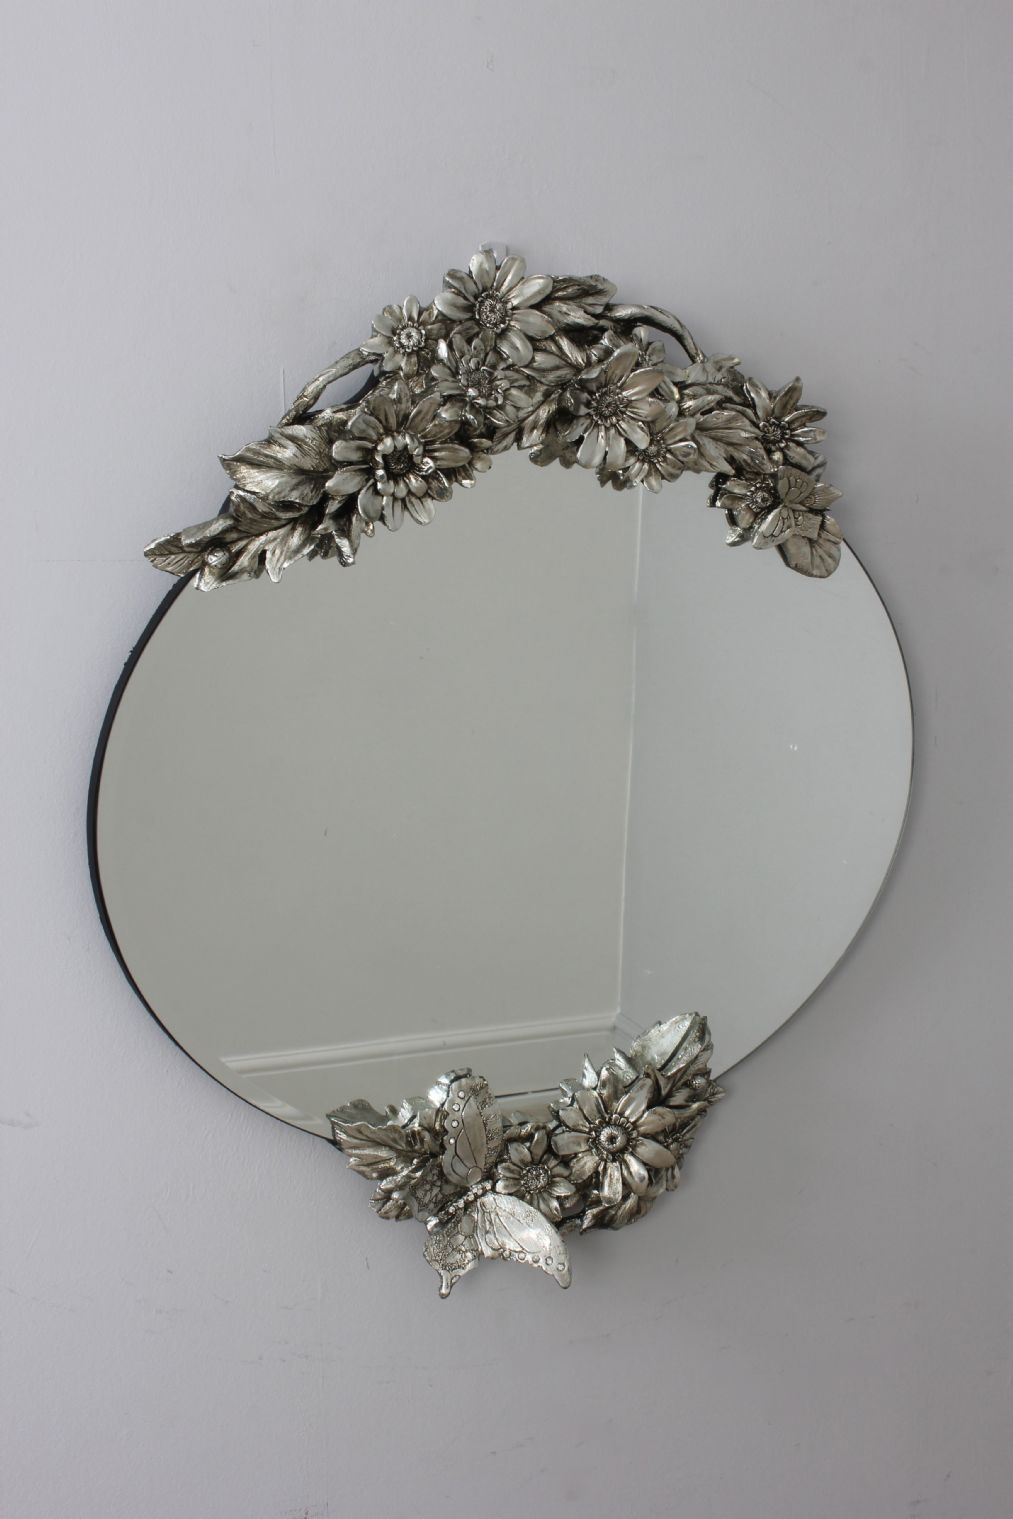 Silver Vintage Style Oval Frameless Wall Mirror With Flowers With Silver Vintage Mirror (View 7 of 15)